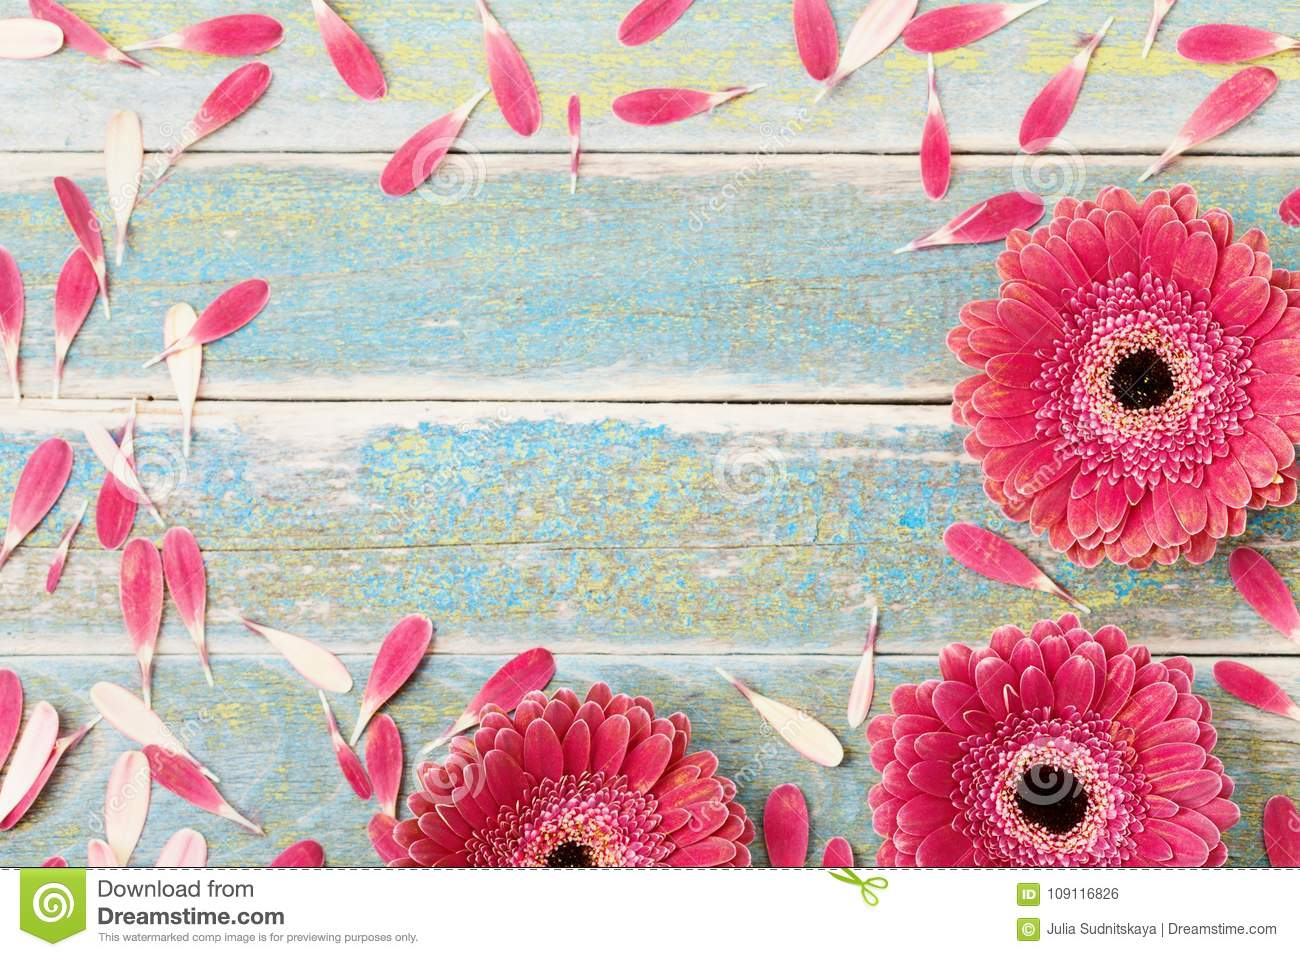 Beautiful gerbera daisy flower greeting card for mother or womans day background. Top view. Vintage style.